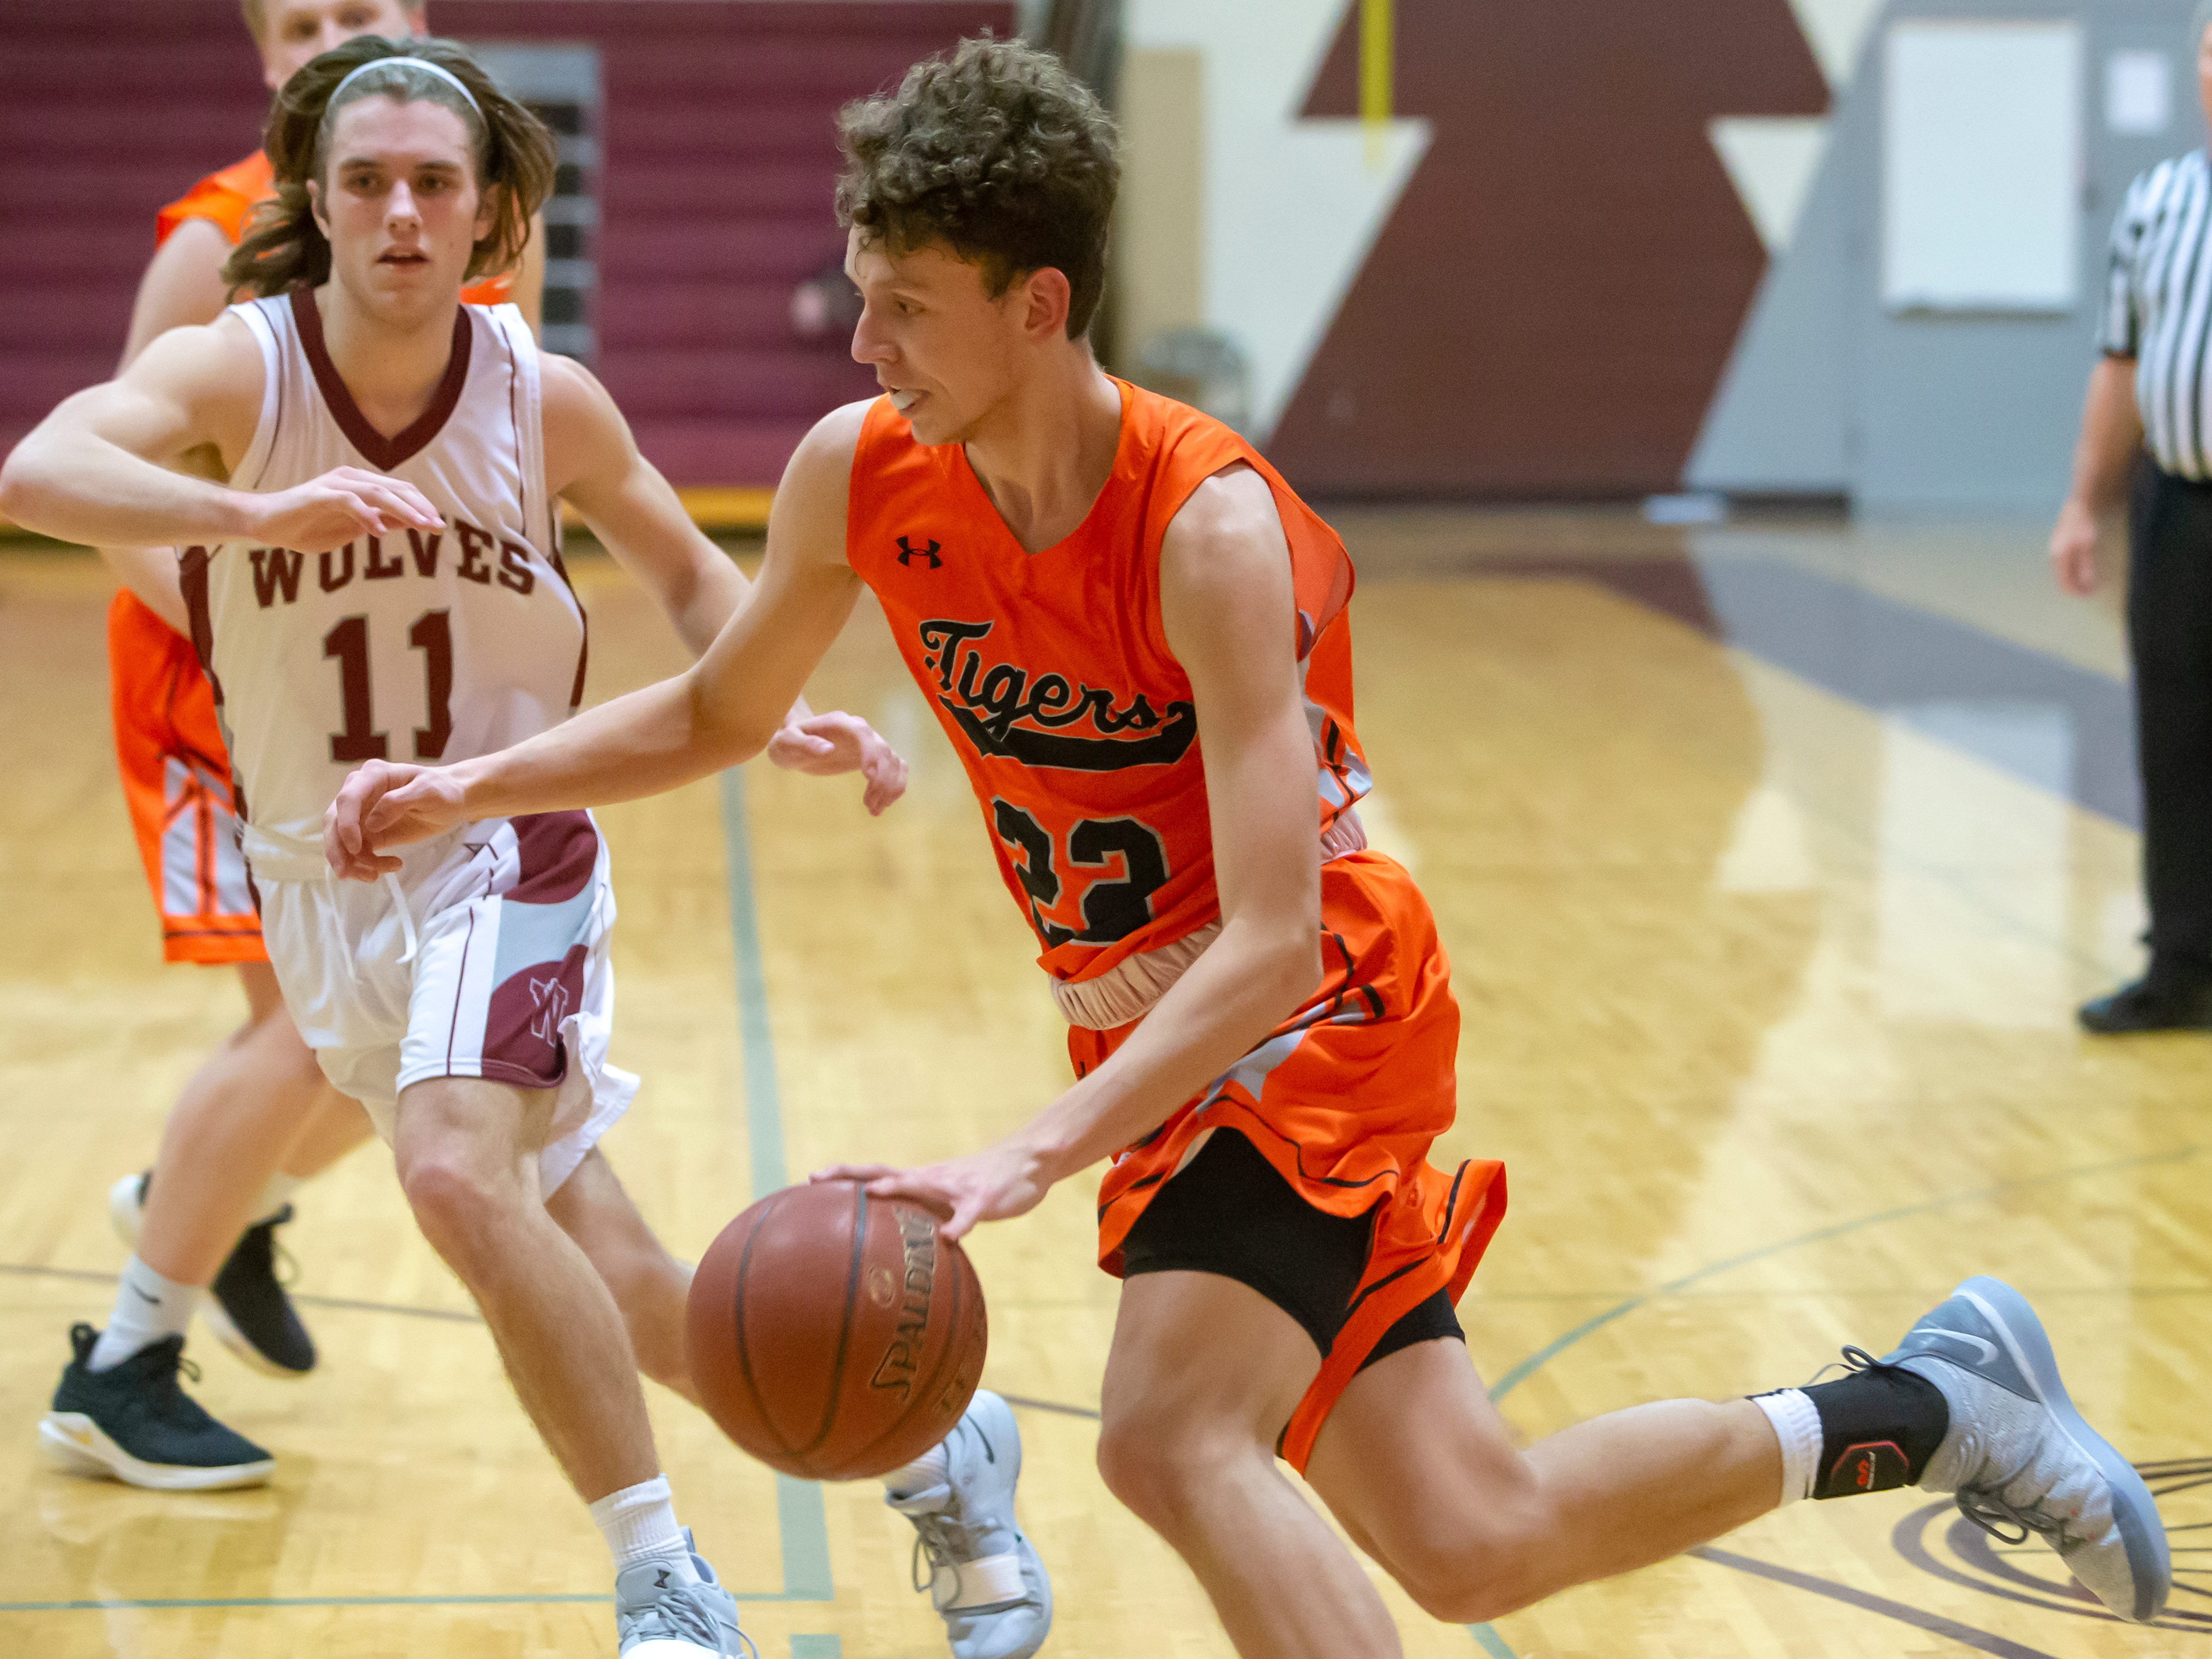 Ripon's Max Beuthin drives the ball to the basket during a game against the Wolves at Winneconne High School on Thursday, January 24, 2019.